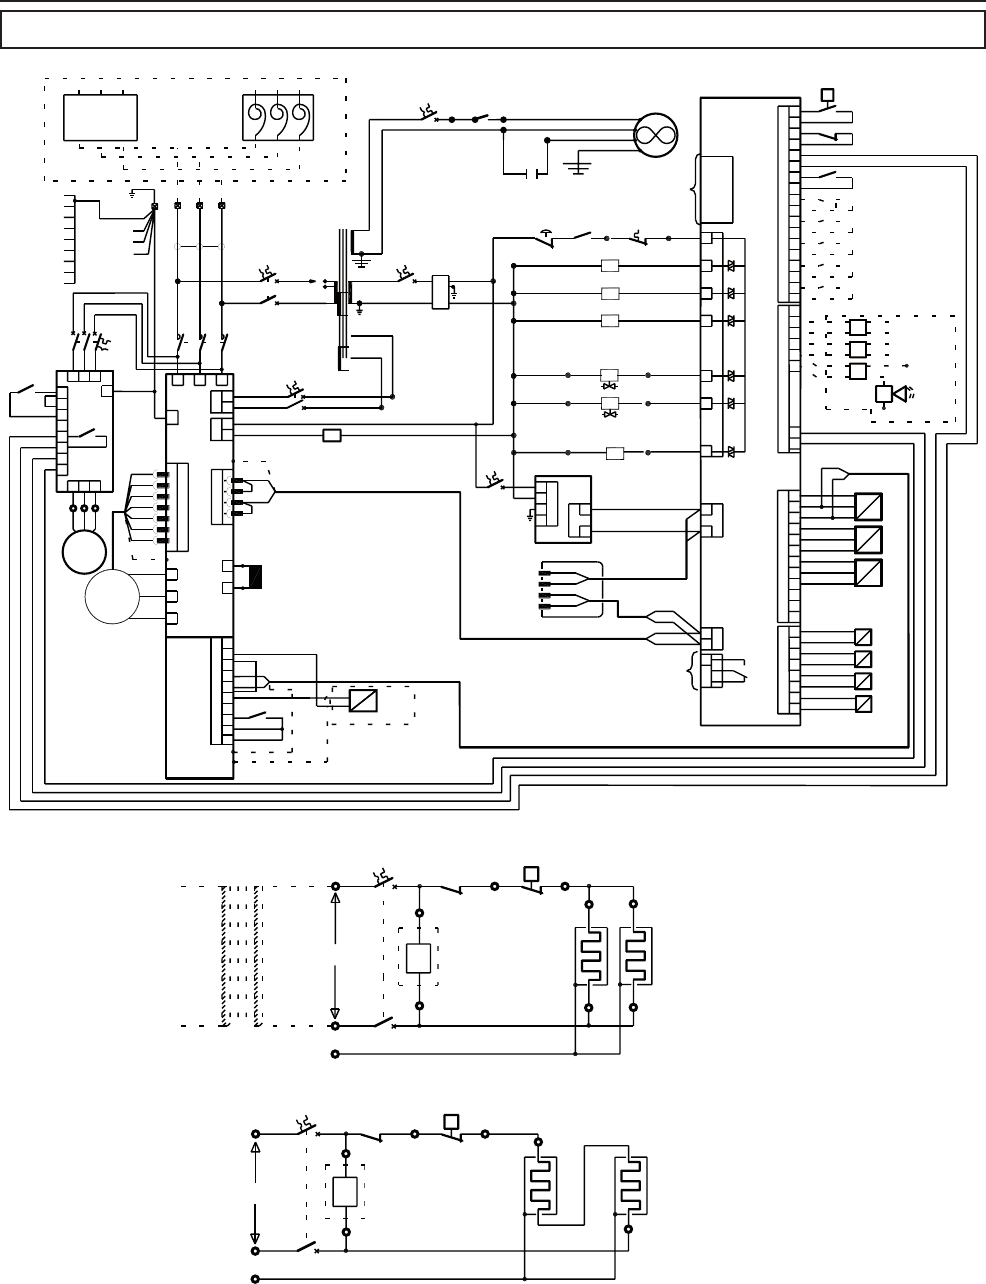 ups connection wiring diagram